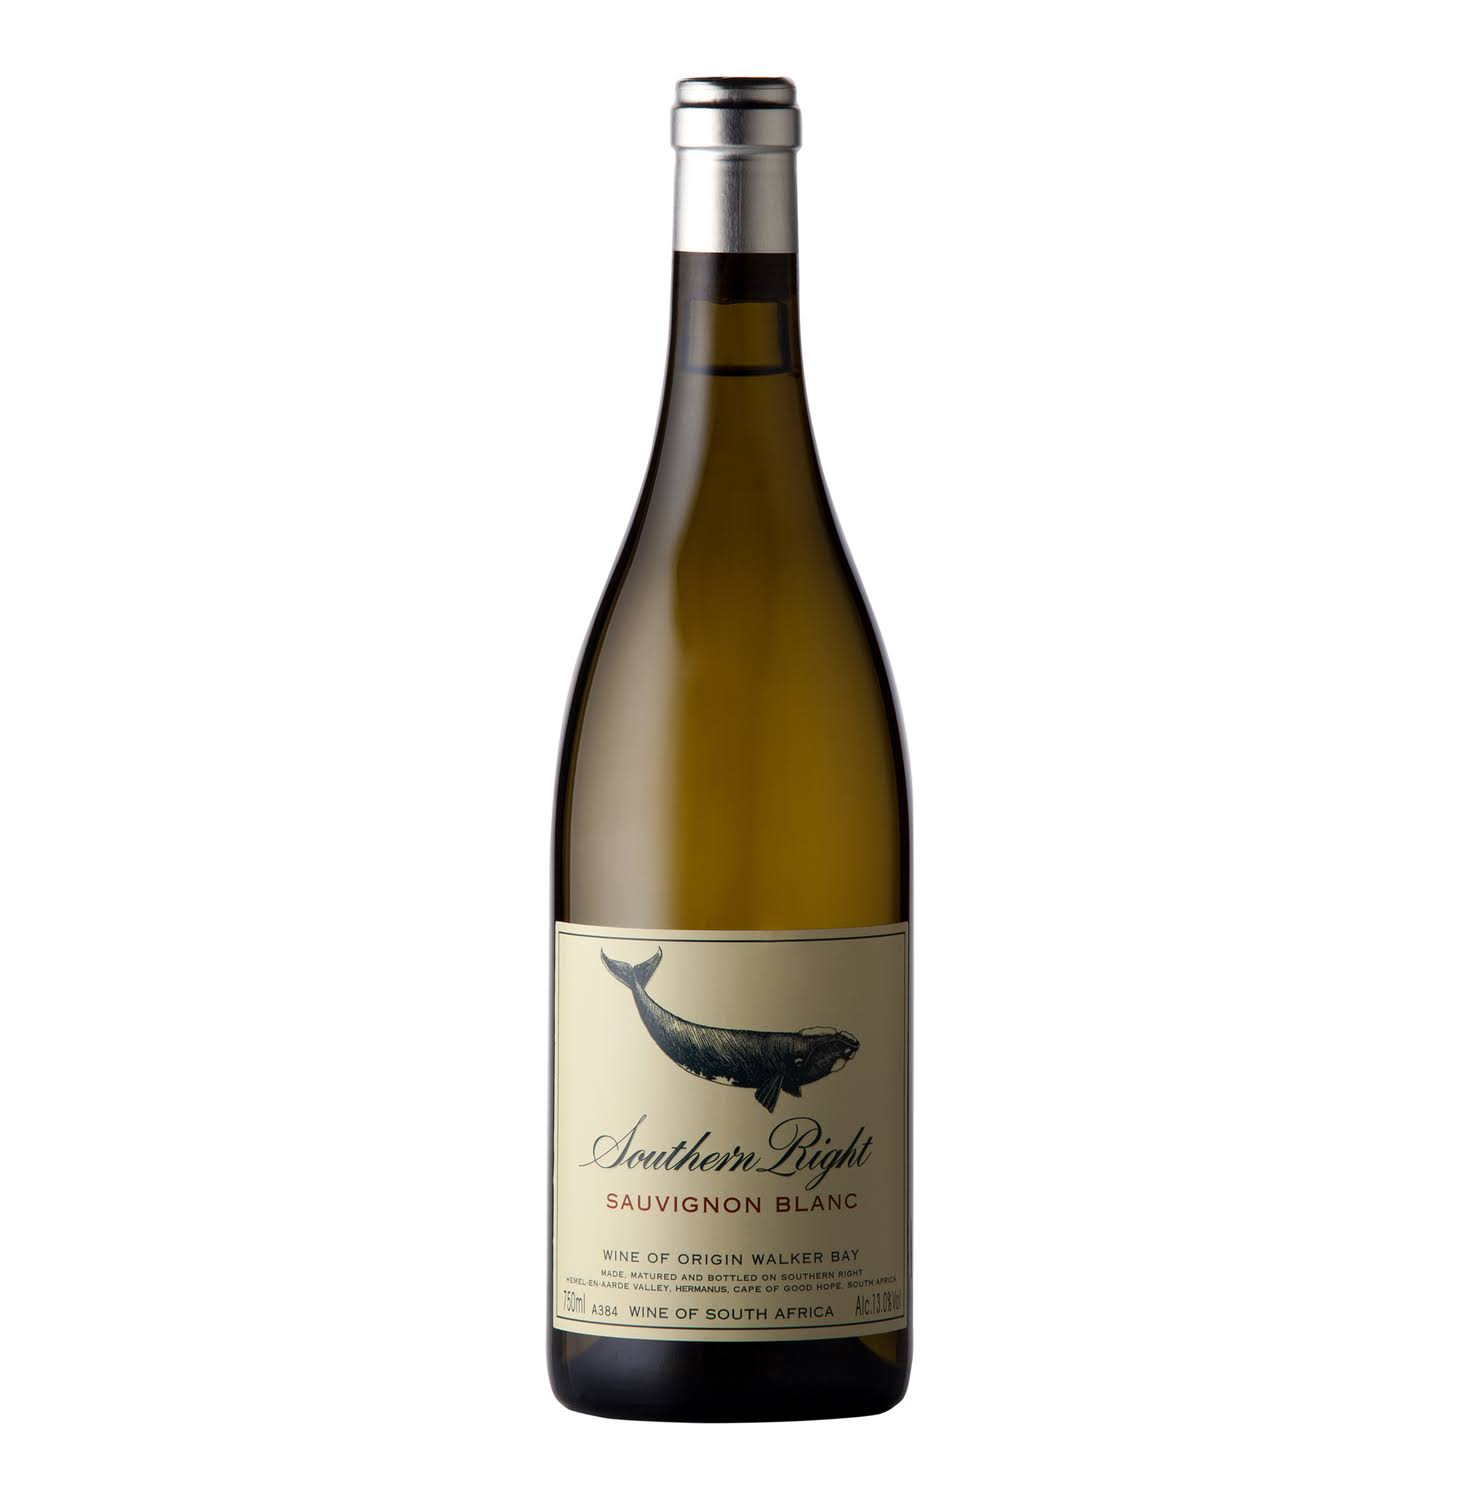 Southern Right Sauvignon Blanc, Walker Bay (Vintage Varies) - 750 ml bottle